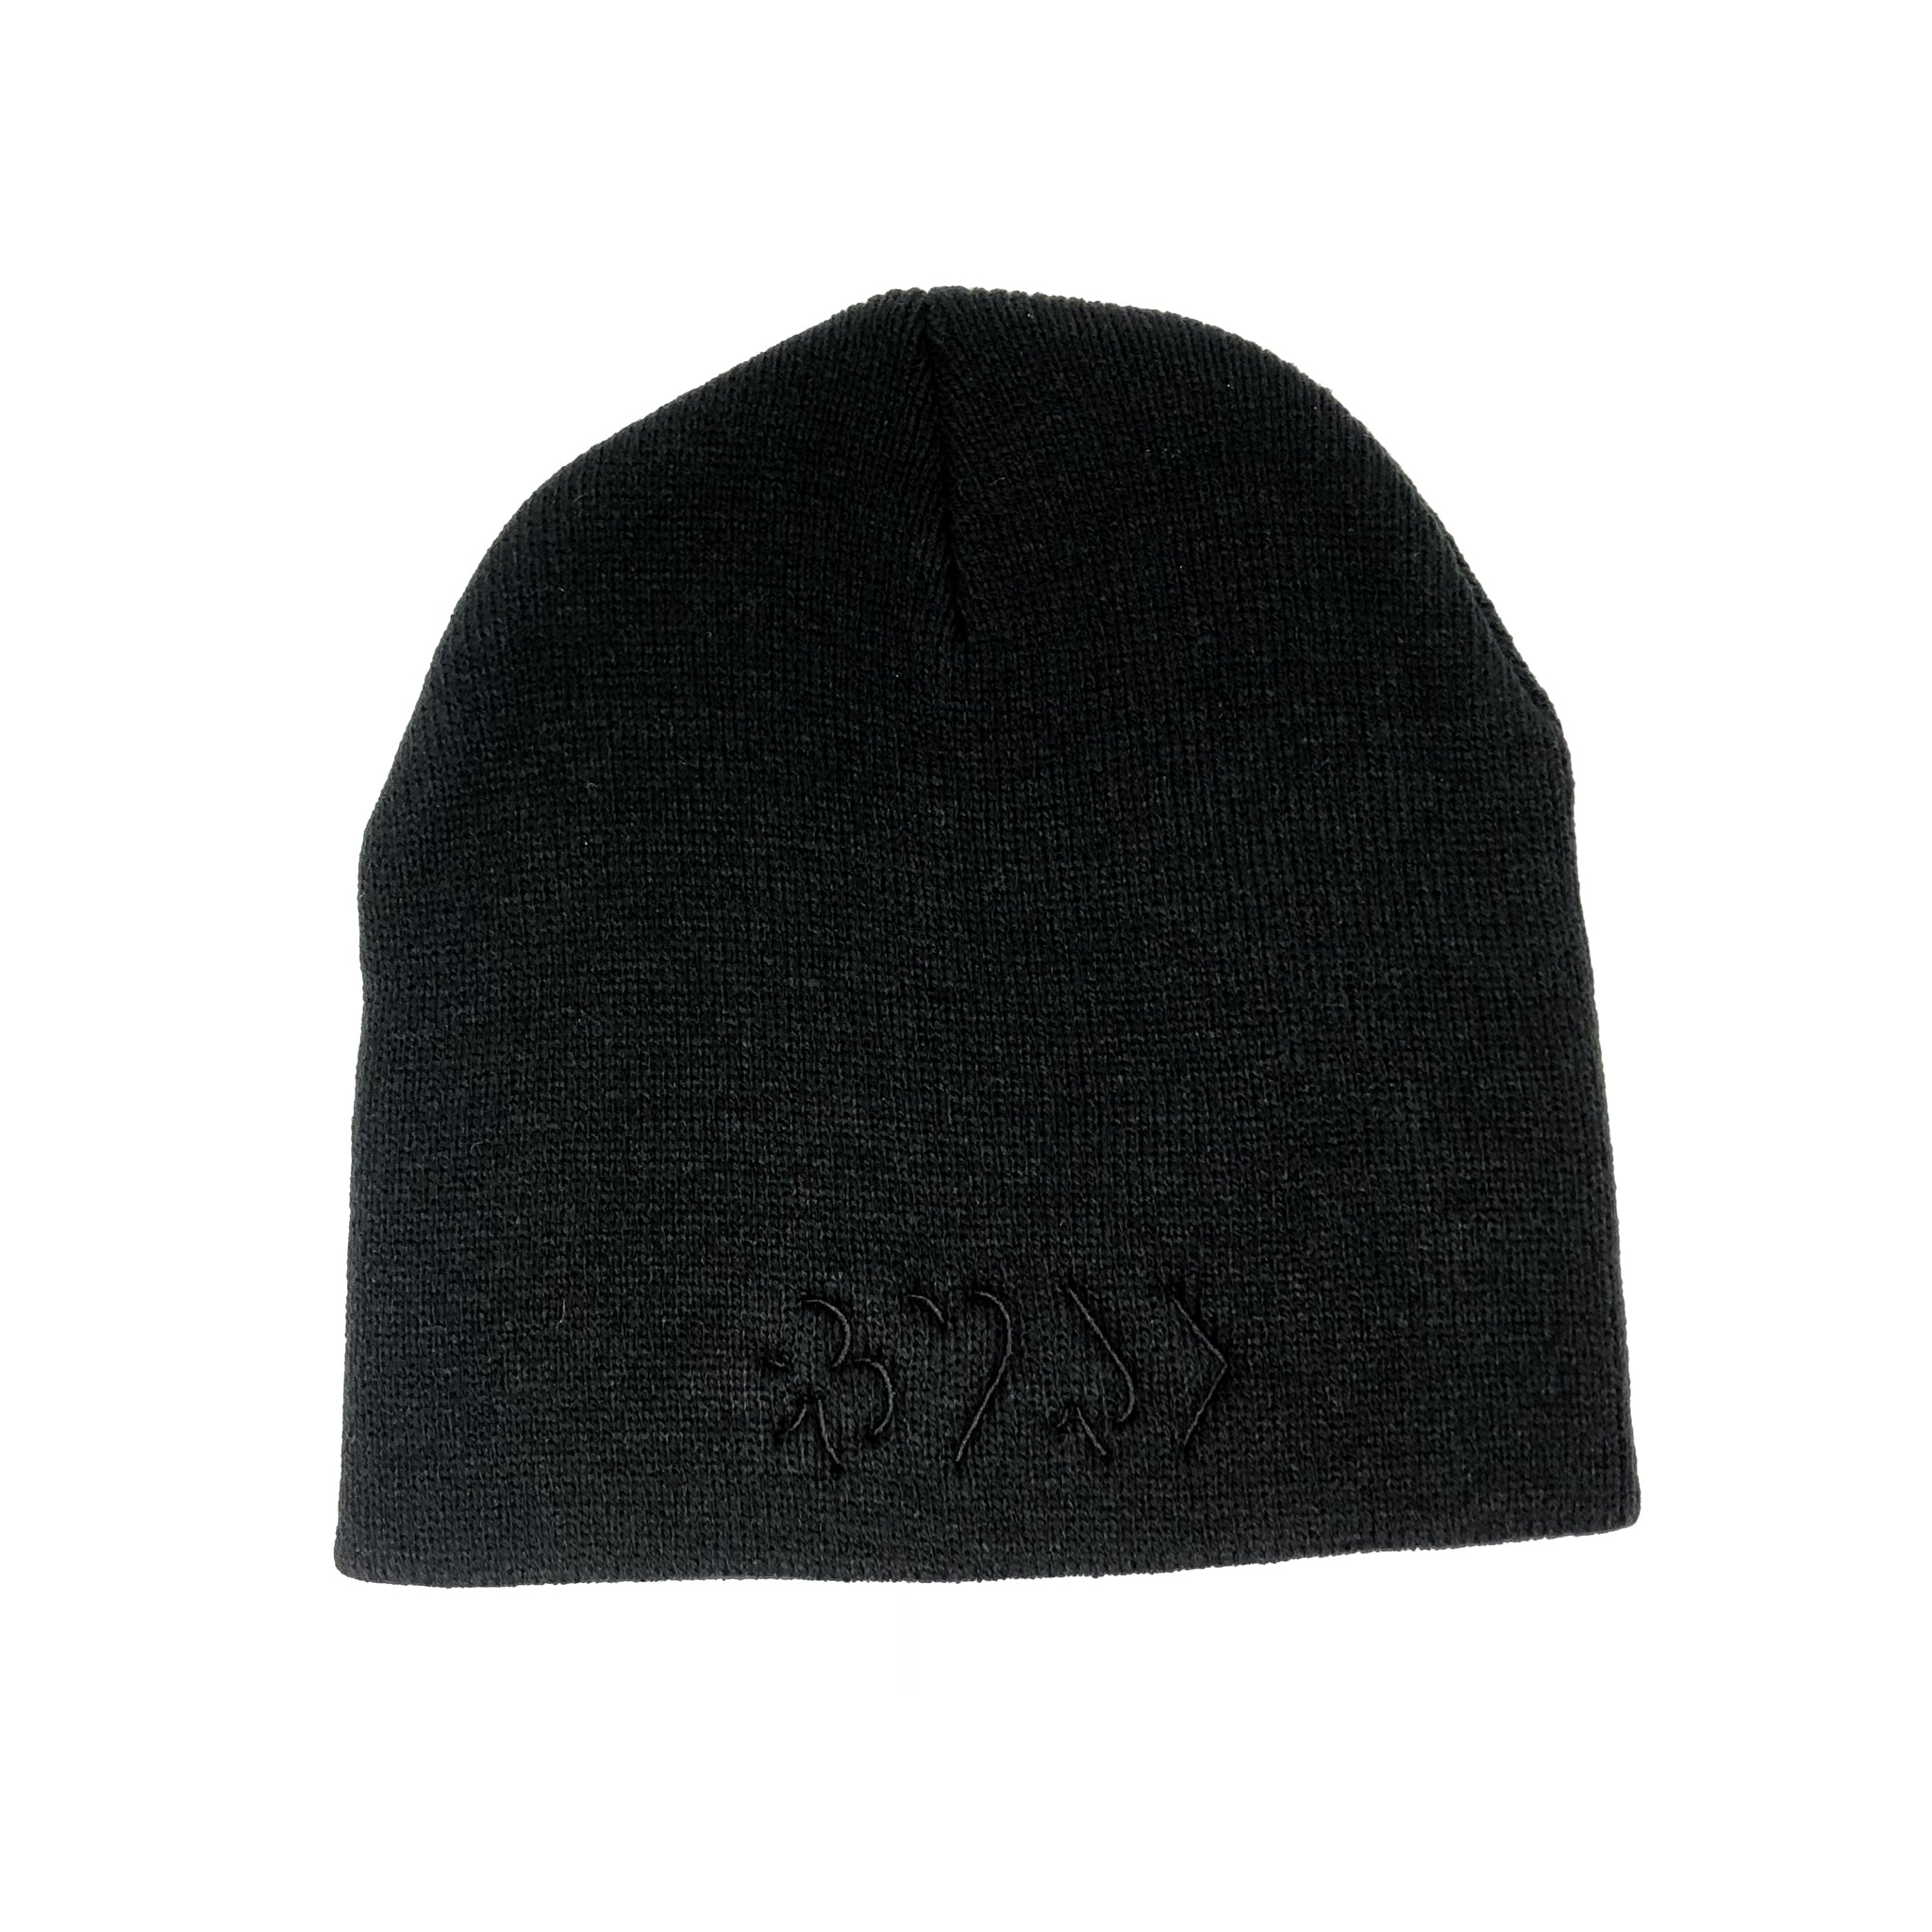 EDGES™ Beanie Tonal Black